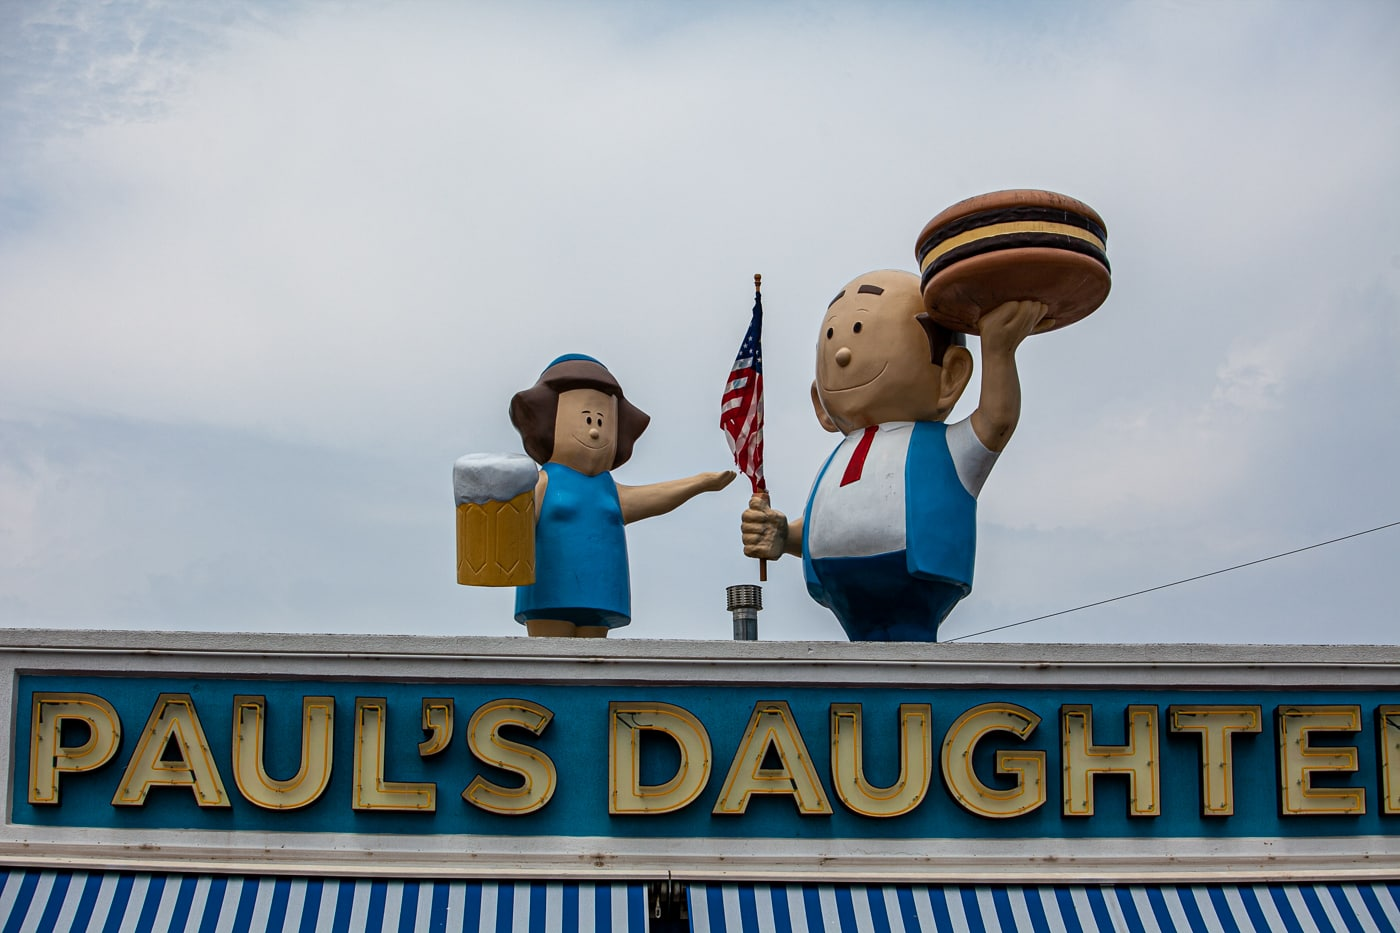 Paul's Daughter in Coney Island New York with an A&W Burger Family (A&W Root Beer Family) on the roof.